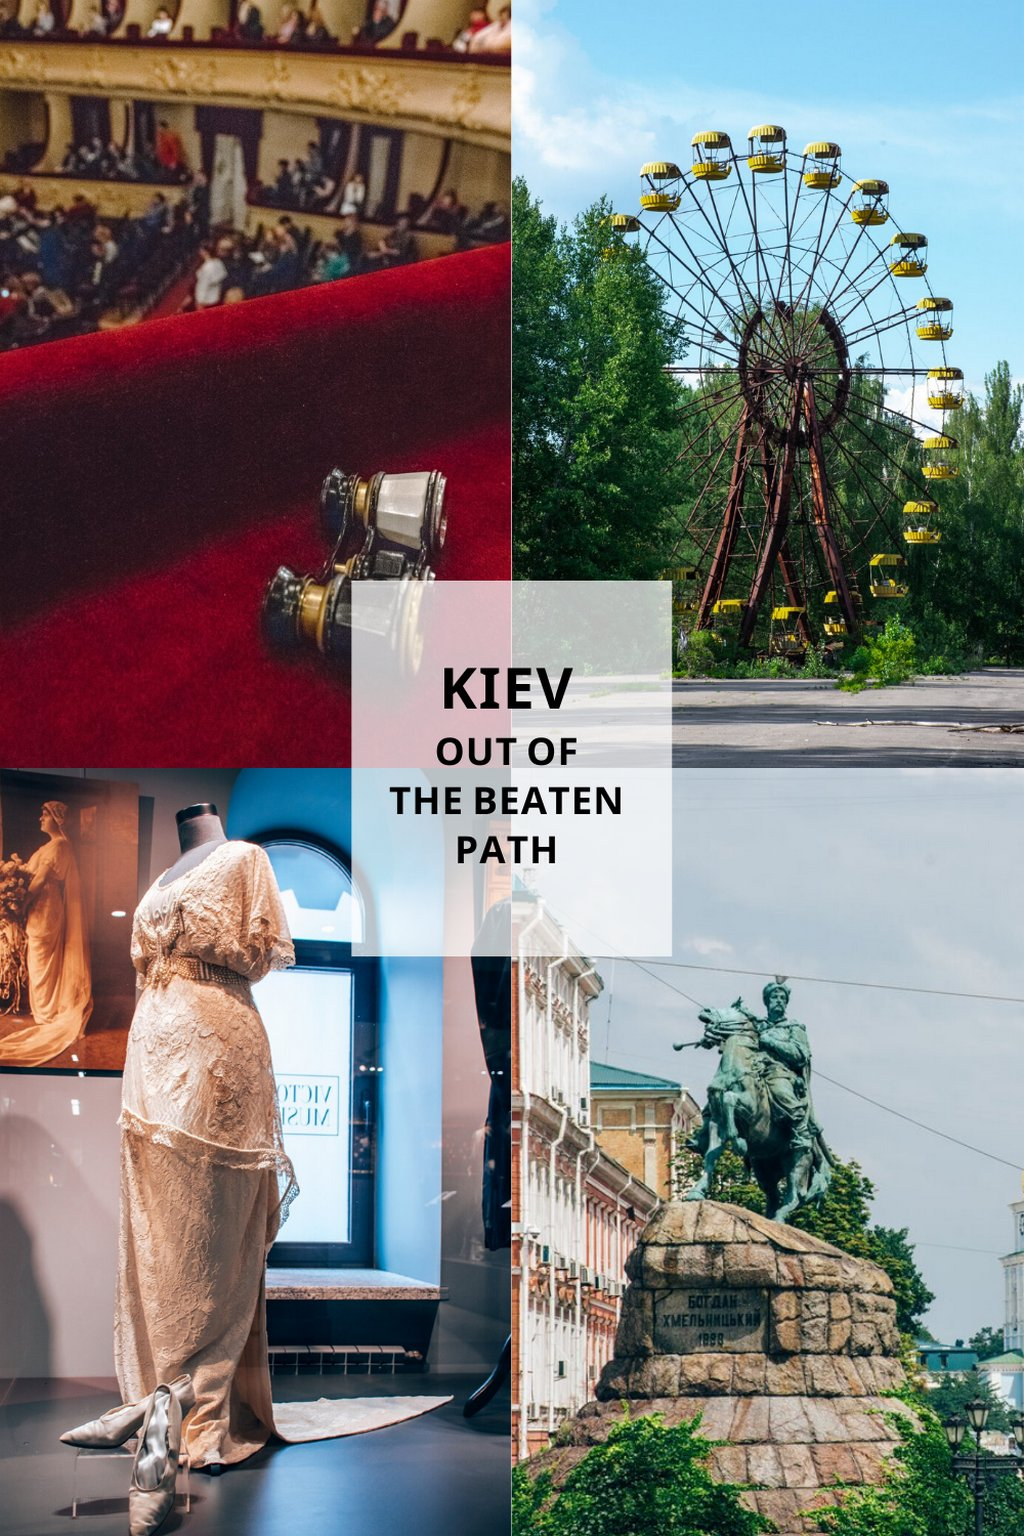 Kiev out of the beaten path